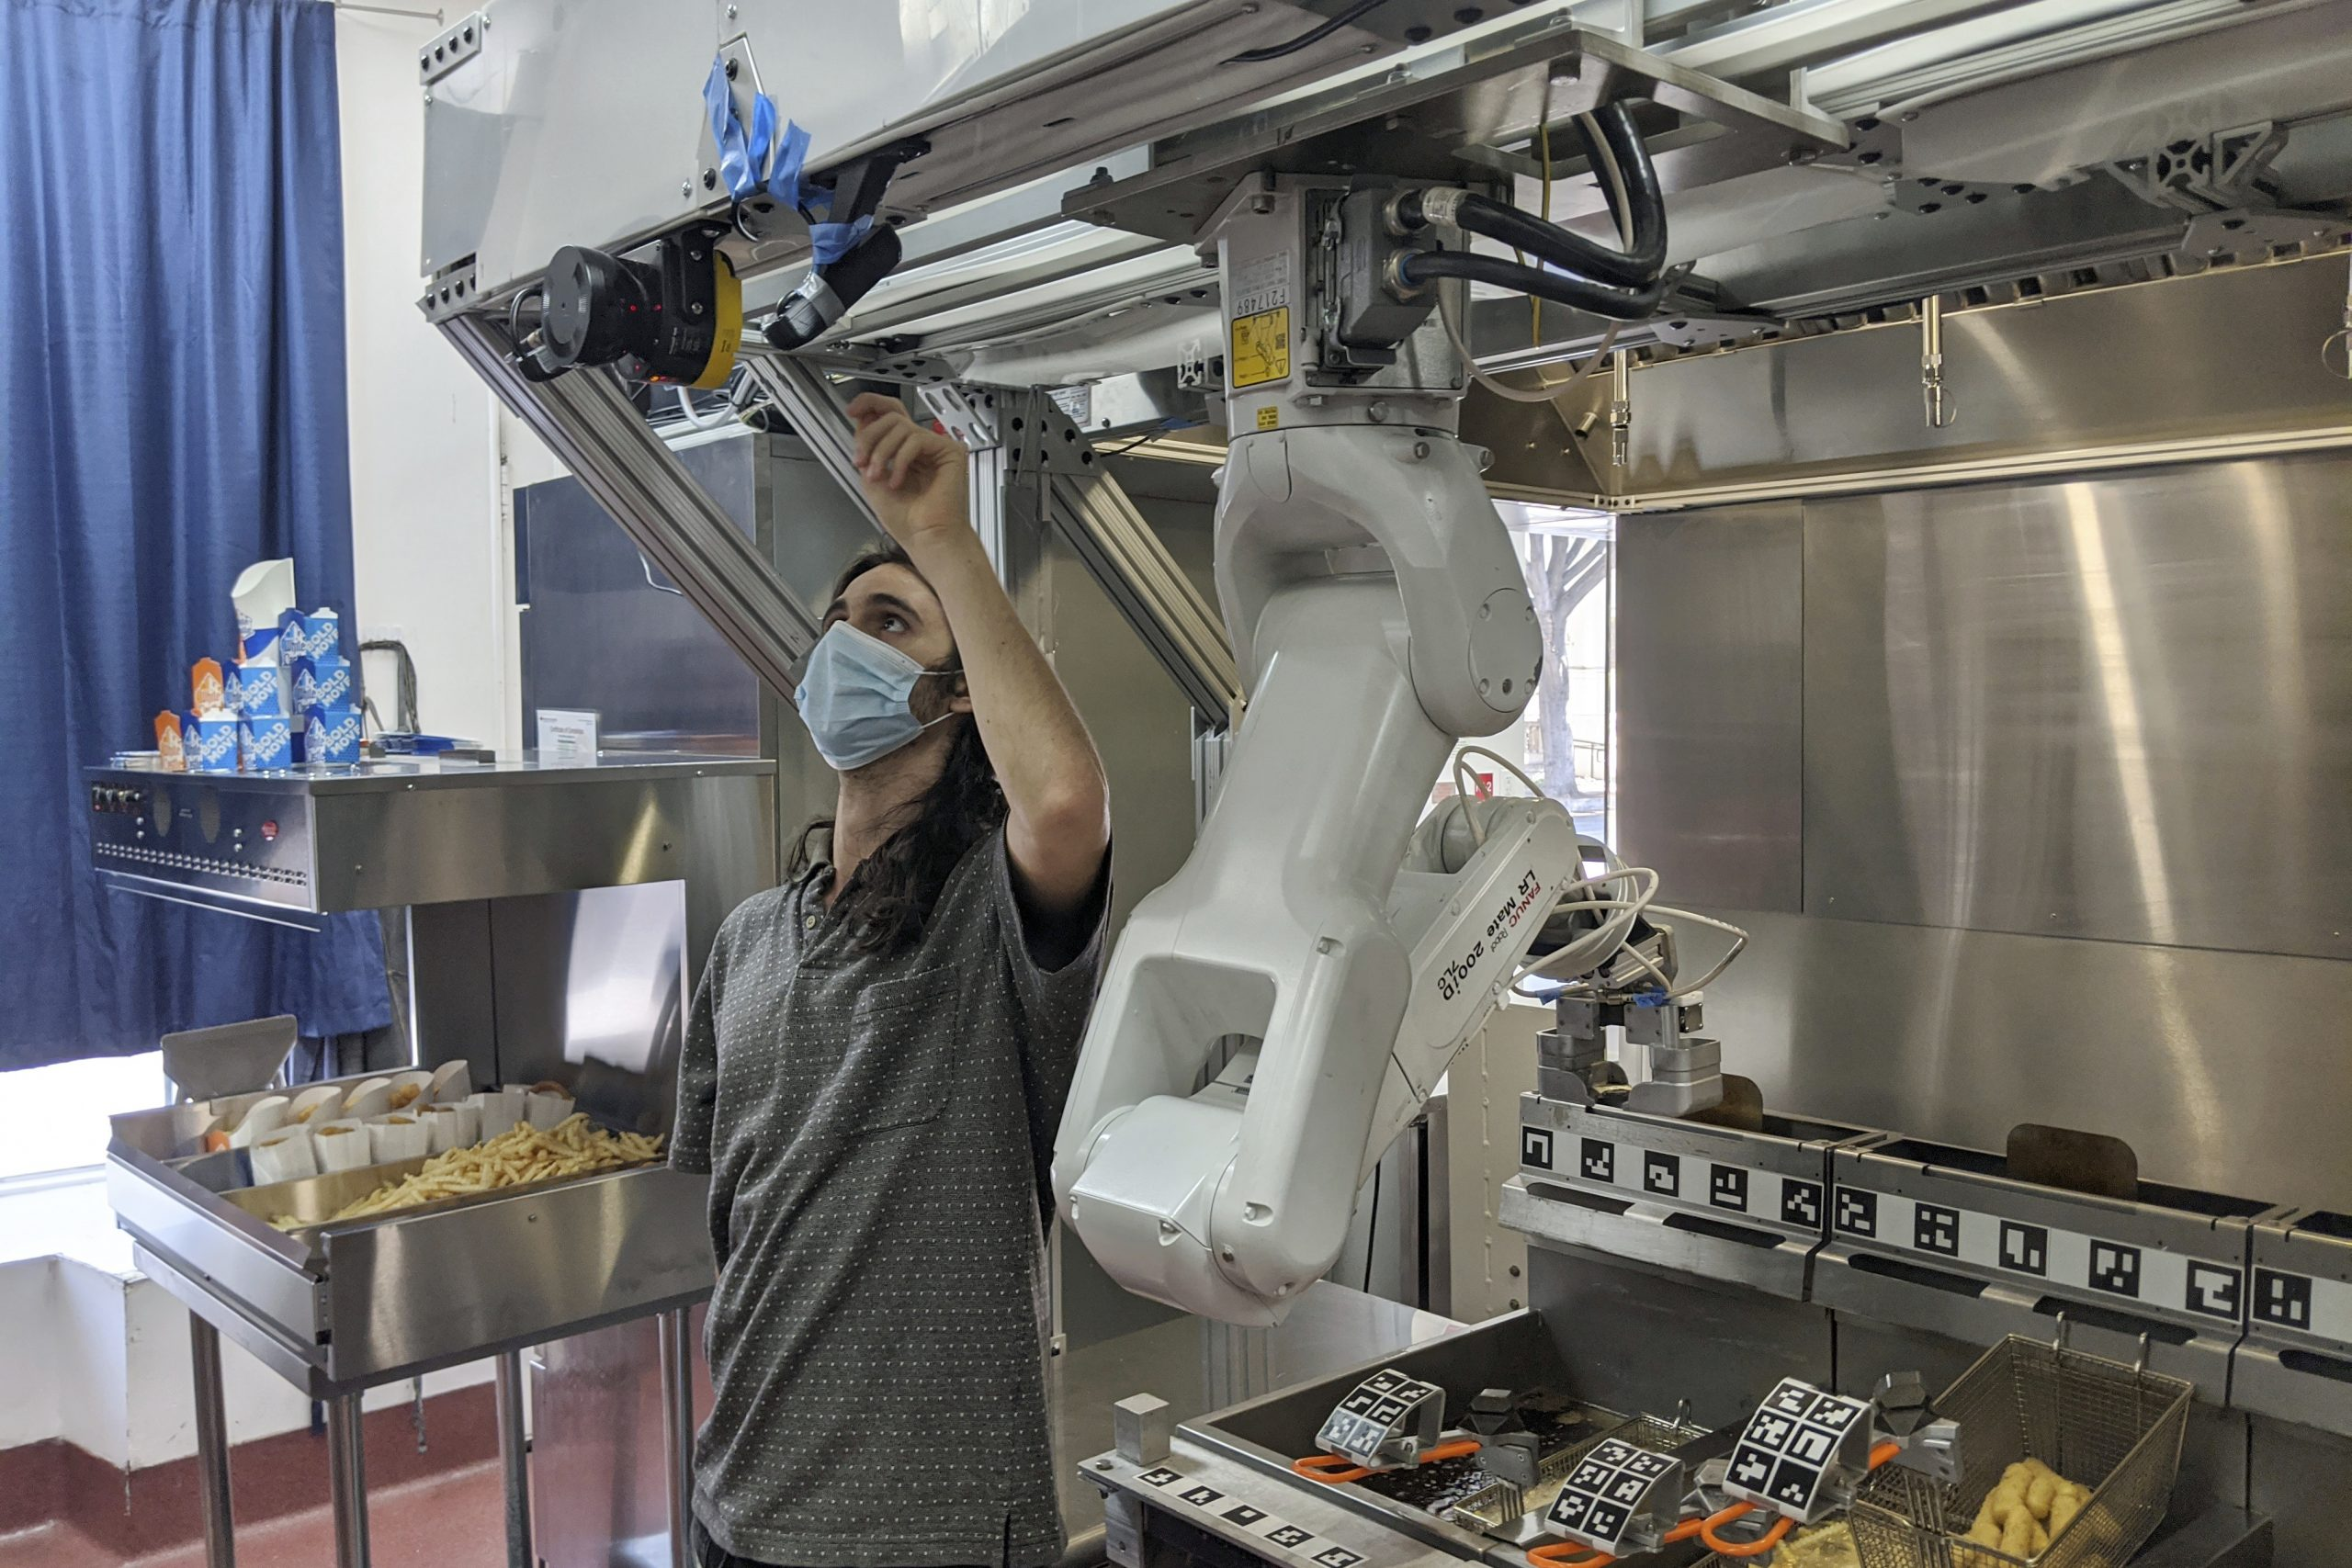 demand-for-robot-cooks-rises-as-kitchens-combat-covid-19